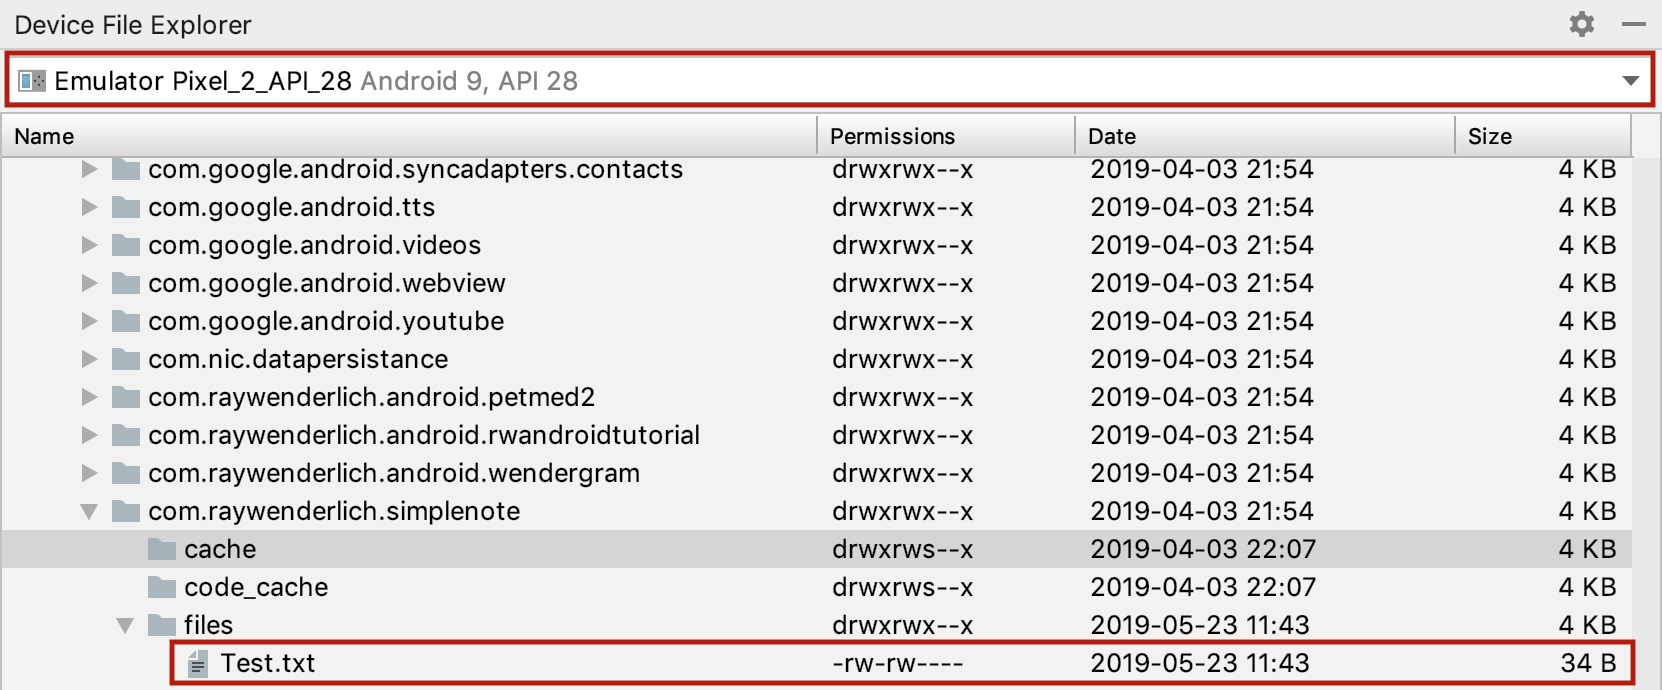 Seeing the File in Device File Explorer